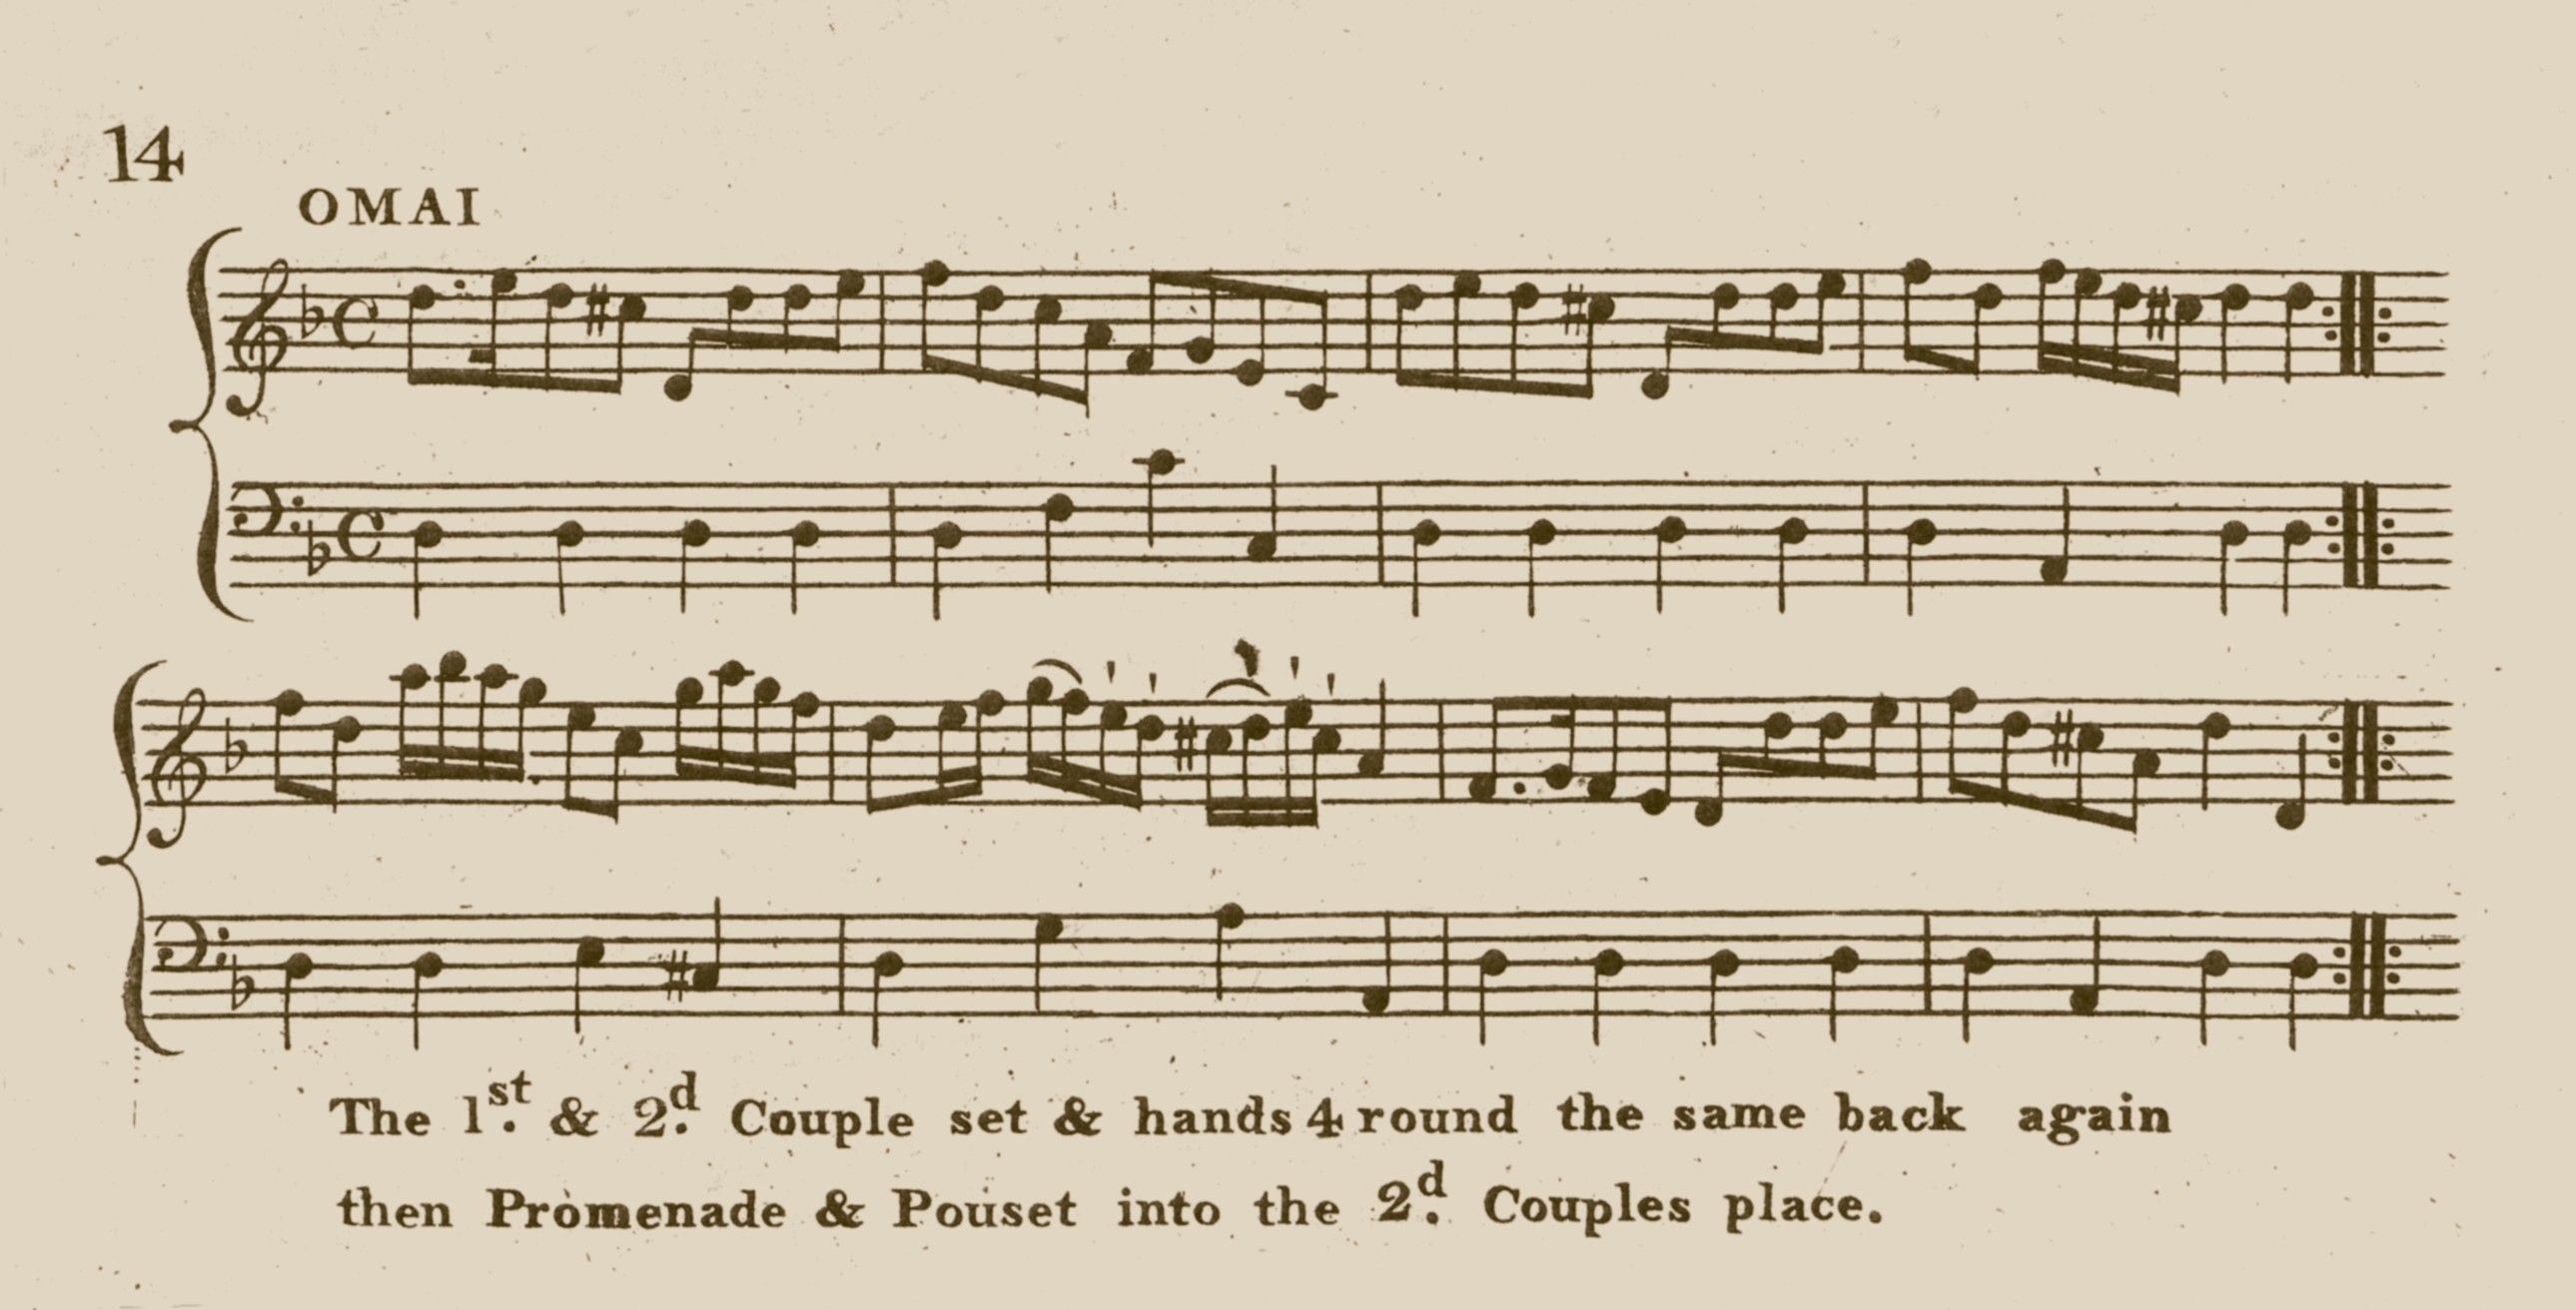 Music and dance instructions for Omai in Campbell's New and Favourite Country Dances and Strathspey, Vol 2 Page 14, c.1787. Courtesy of Kidson Collection, Mitchell Library, Glasgow